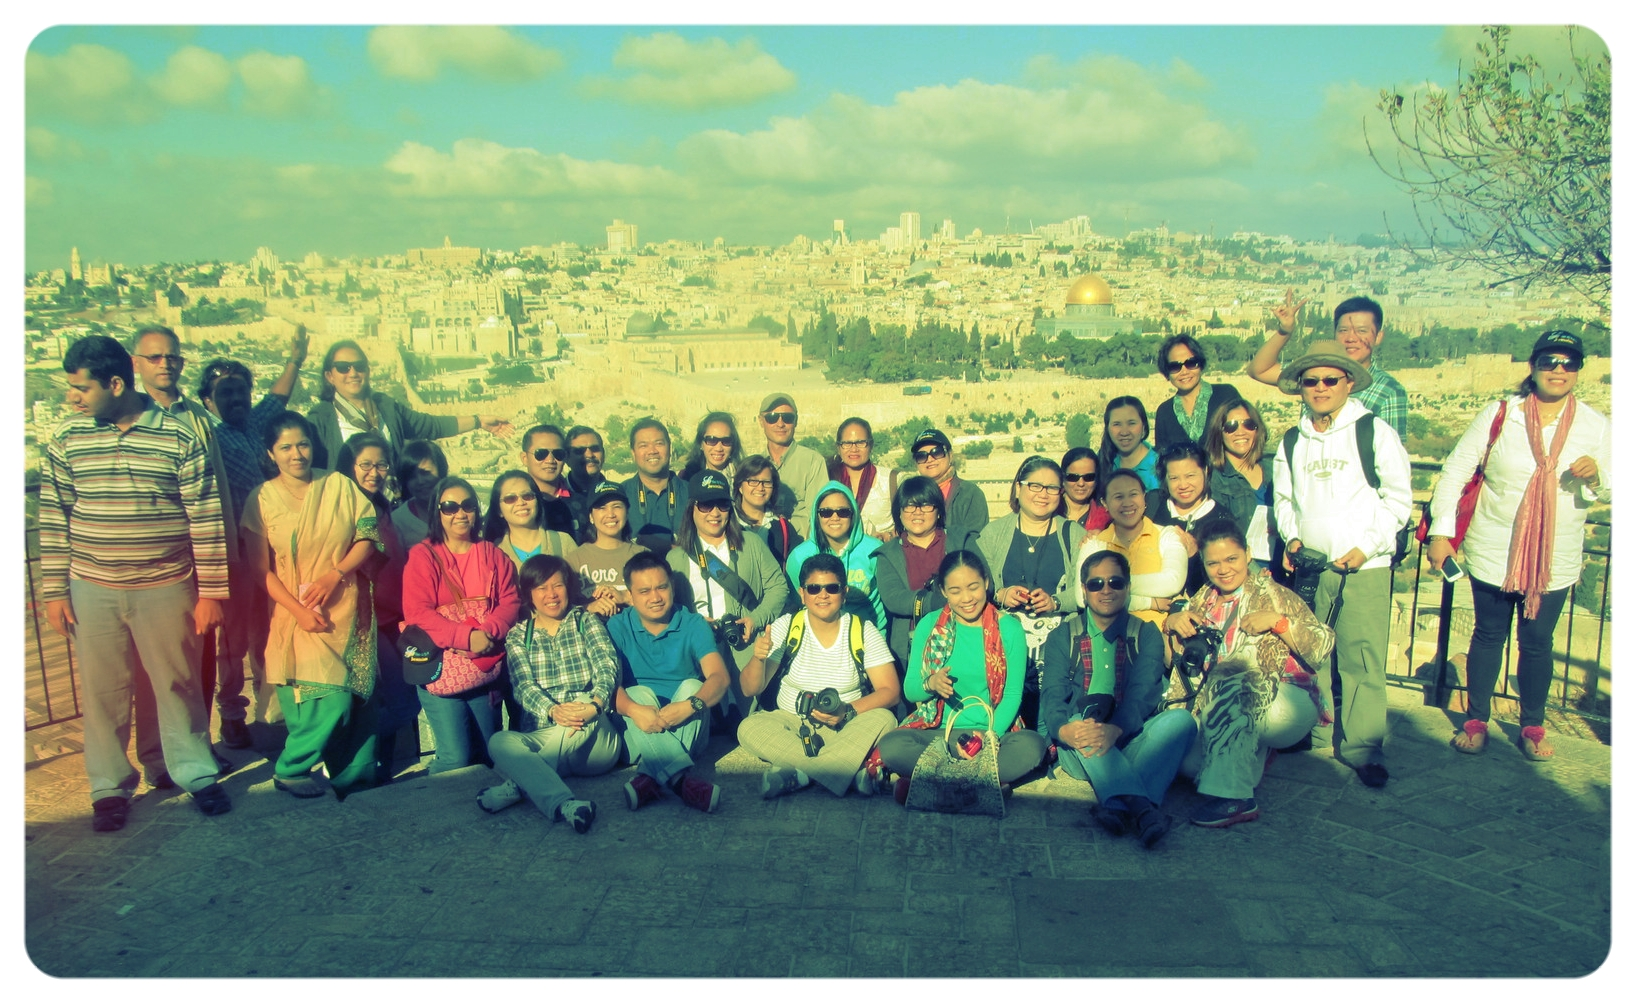 With the Filipino tourists on Mt. of Olives, 2014